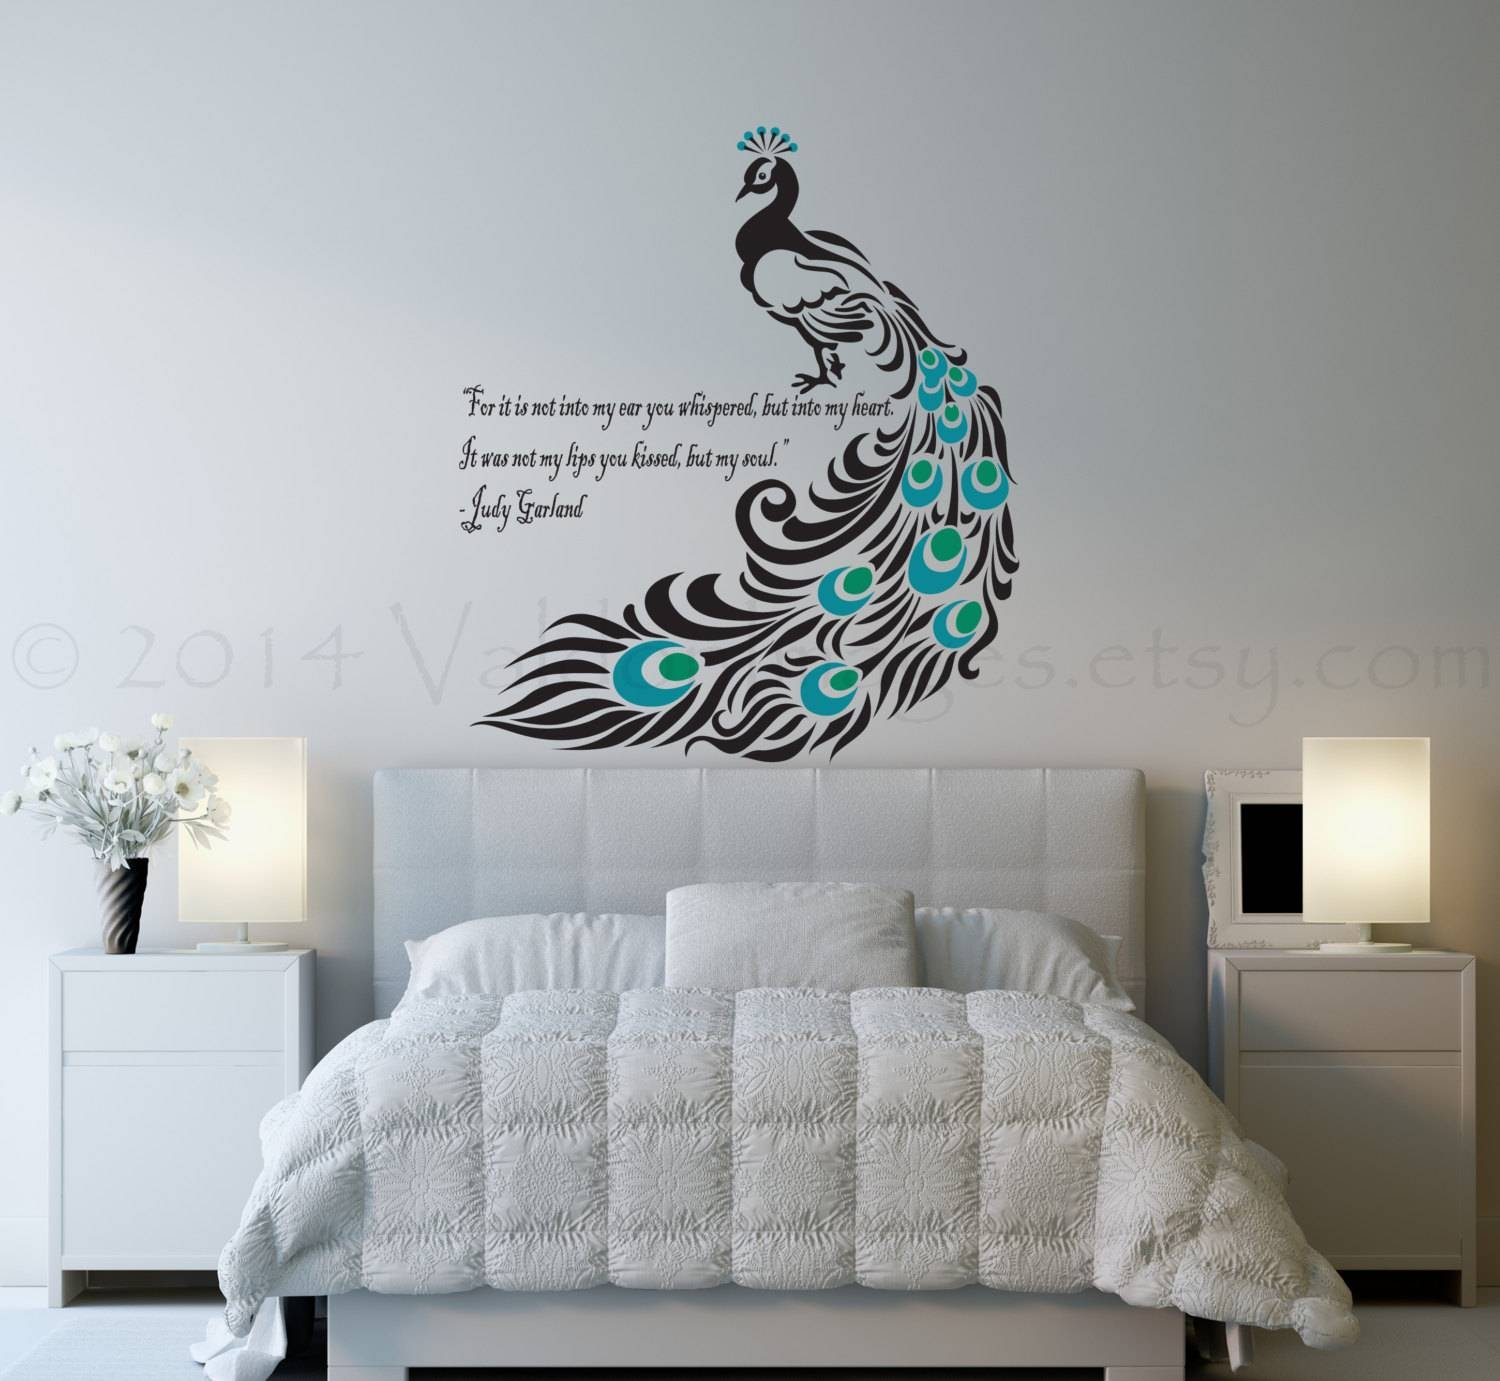 Fancy Bedroom Wall Art With Wall Decals Also Quote Words And Pertaining To 2017 Bedroom Wall Art (View 1 of 25)